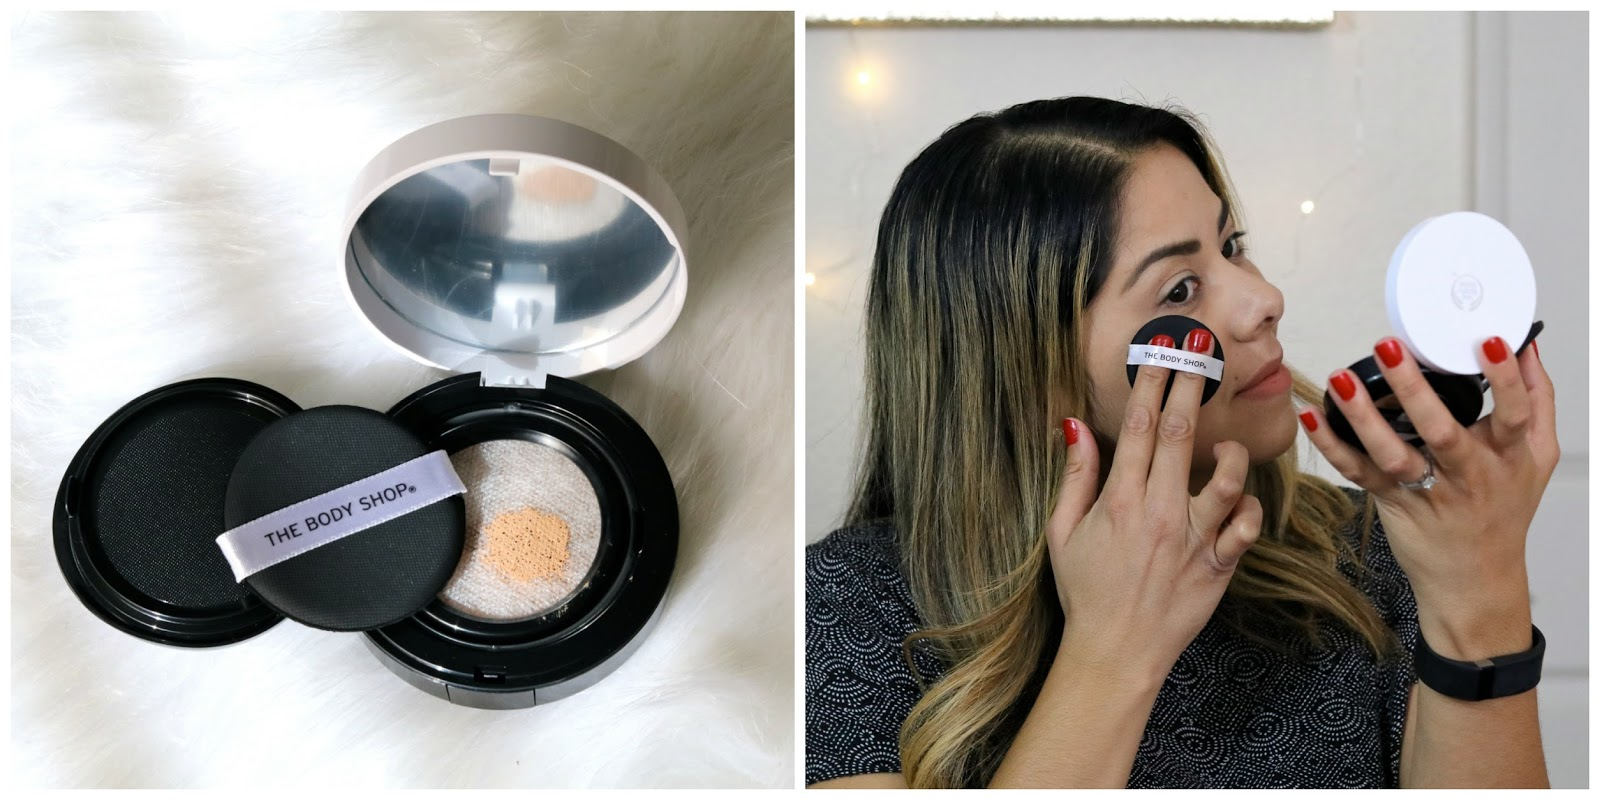 Fresh Nude Cushion Foundation, Body Shop Fresh Nude Cushion Foundation review, the body shop foundation